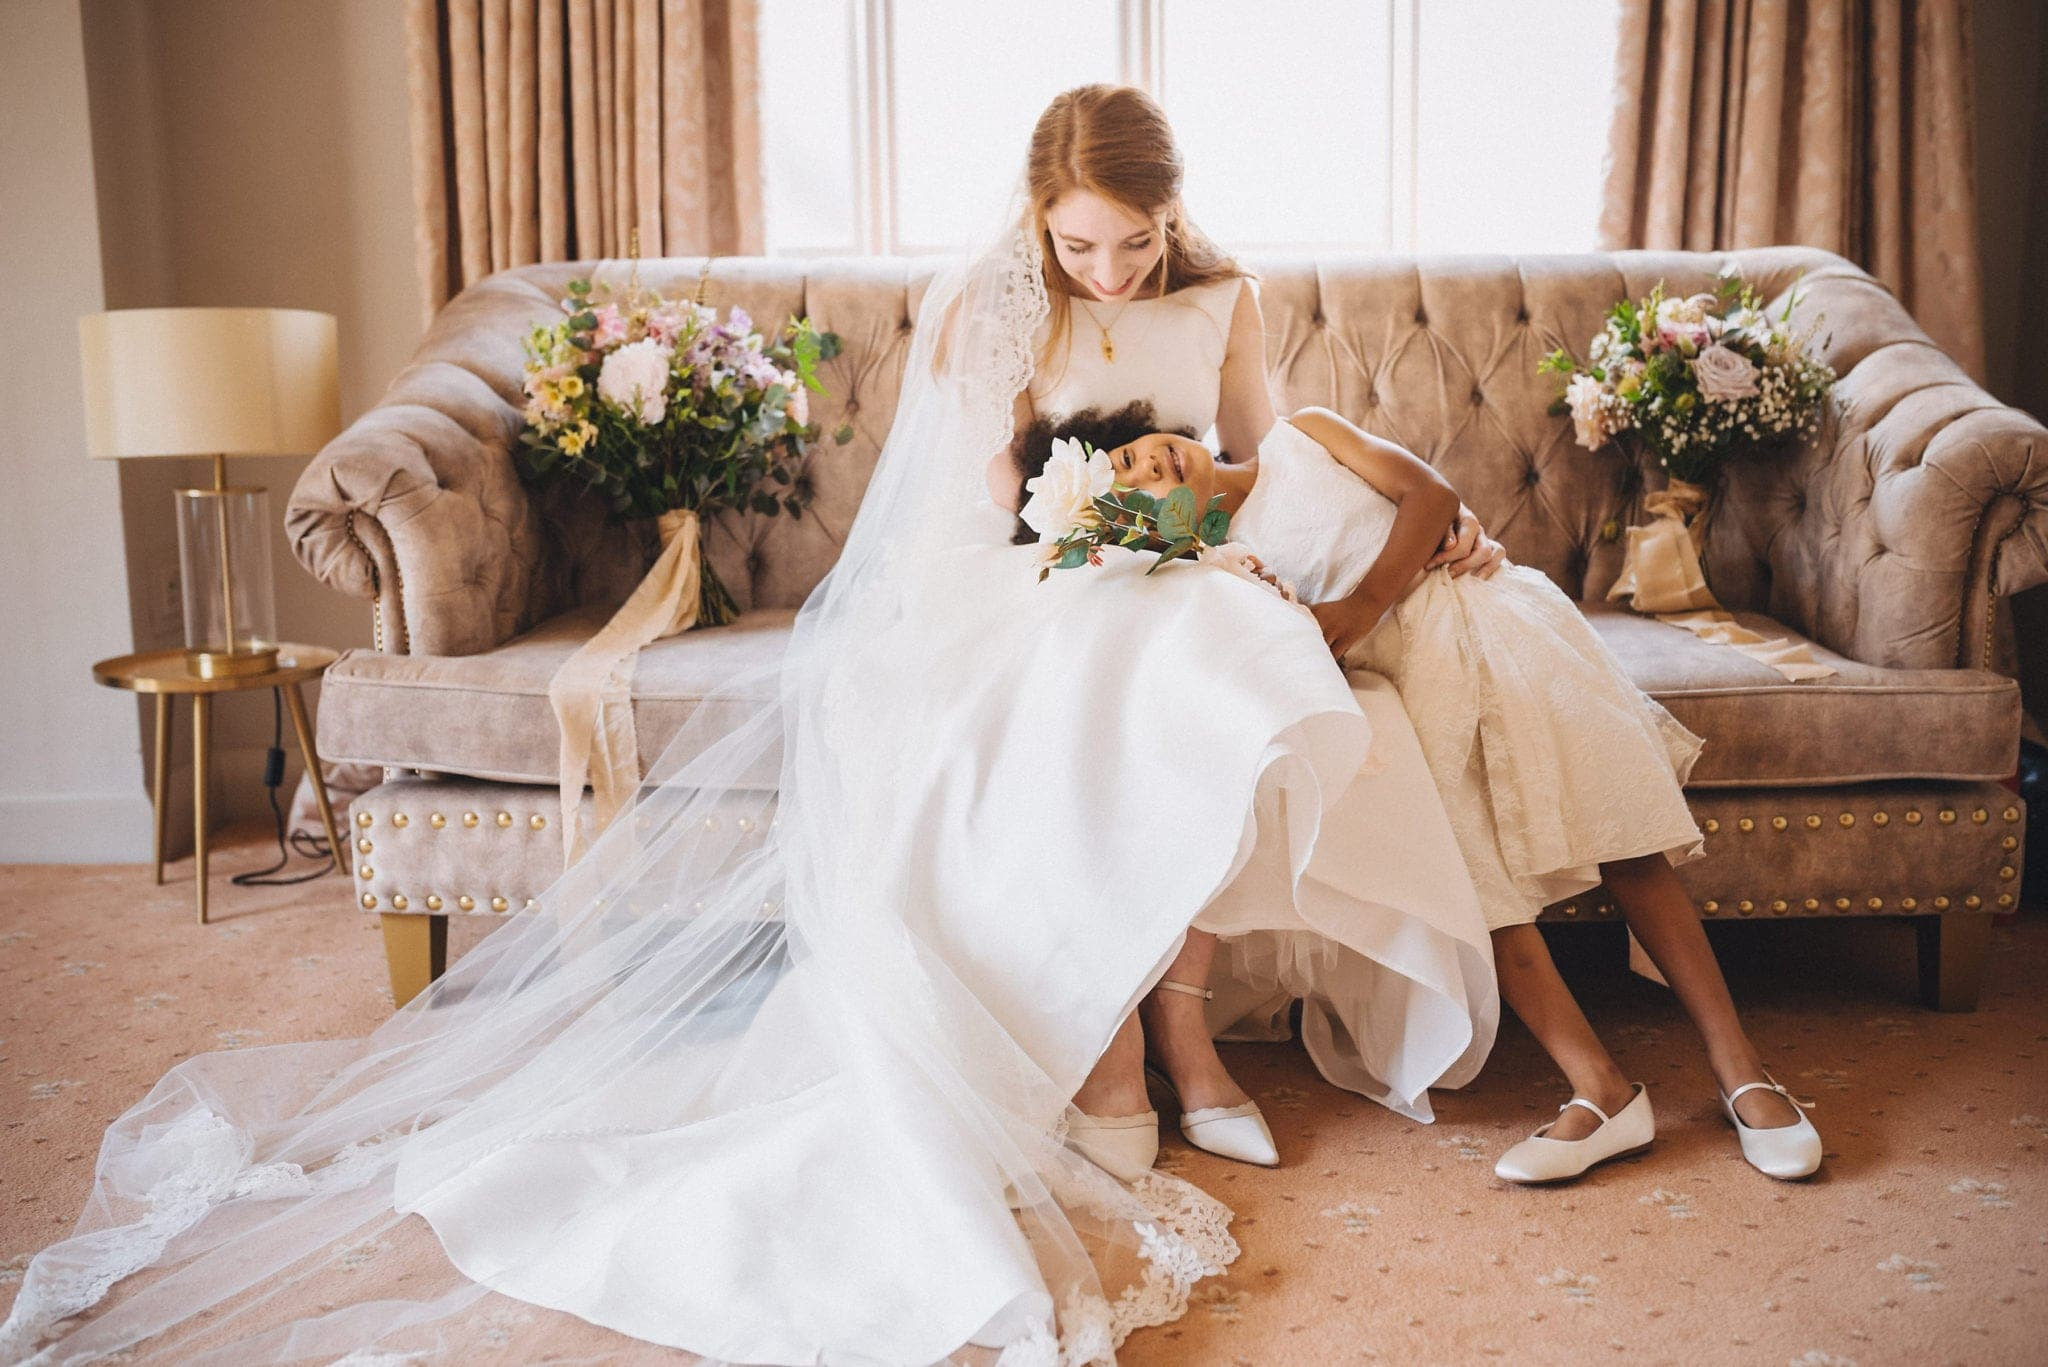 Flower girl lies with her head in bride's lap on velvet sofa